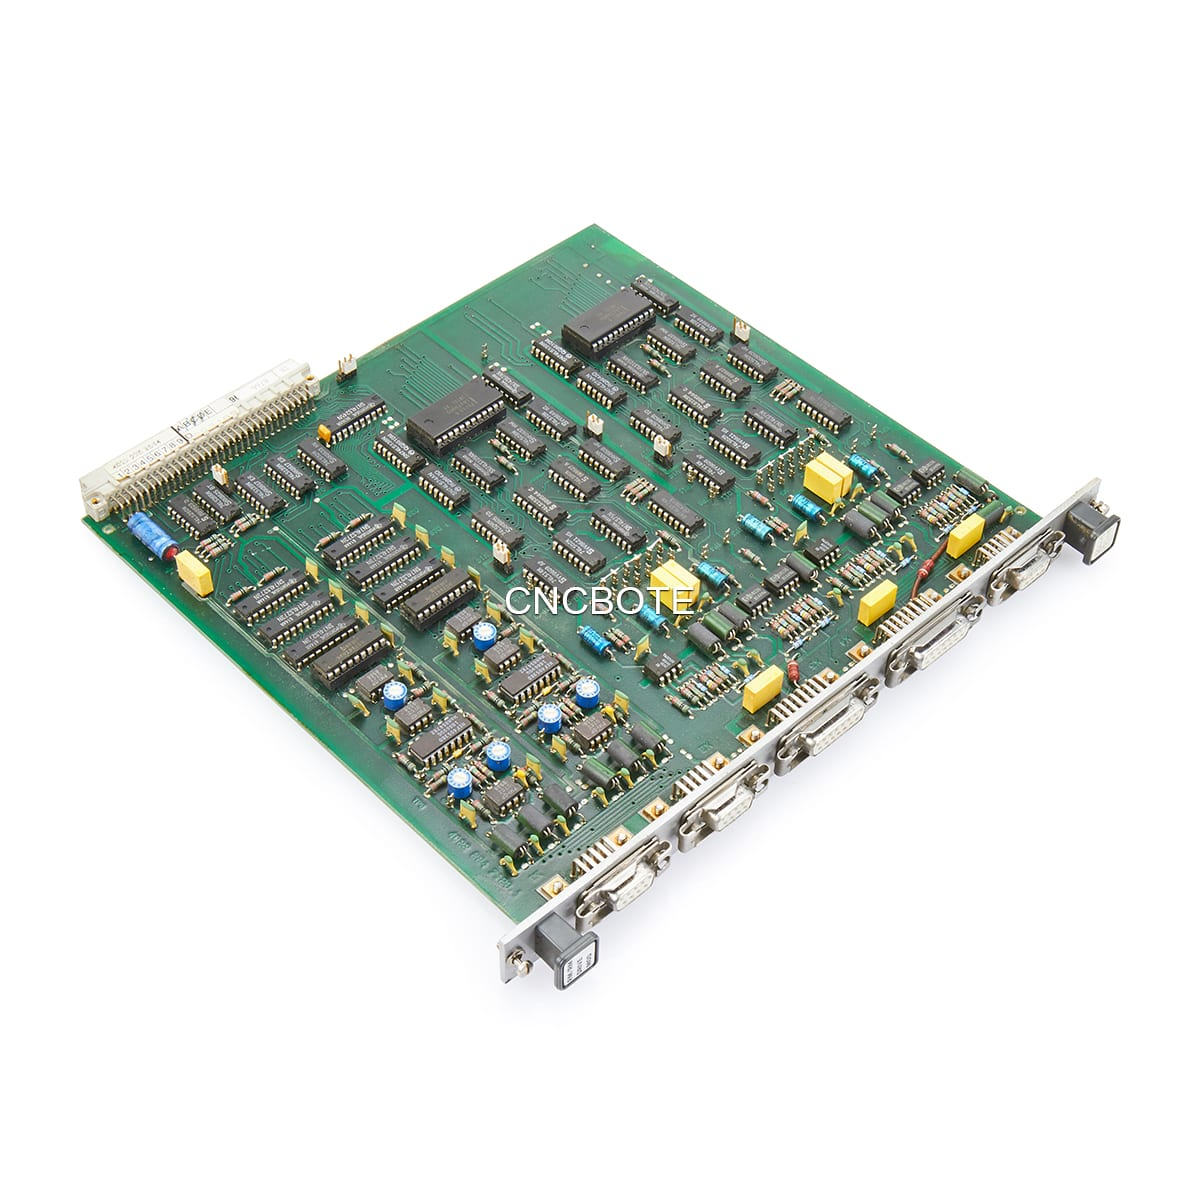 Philips 4022 226 3644 Rm Drive Mod Circuit Board Cnc Bote The